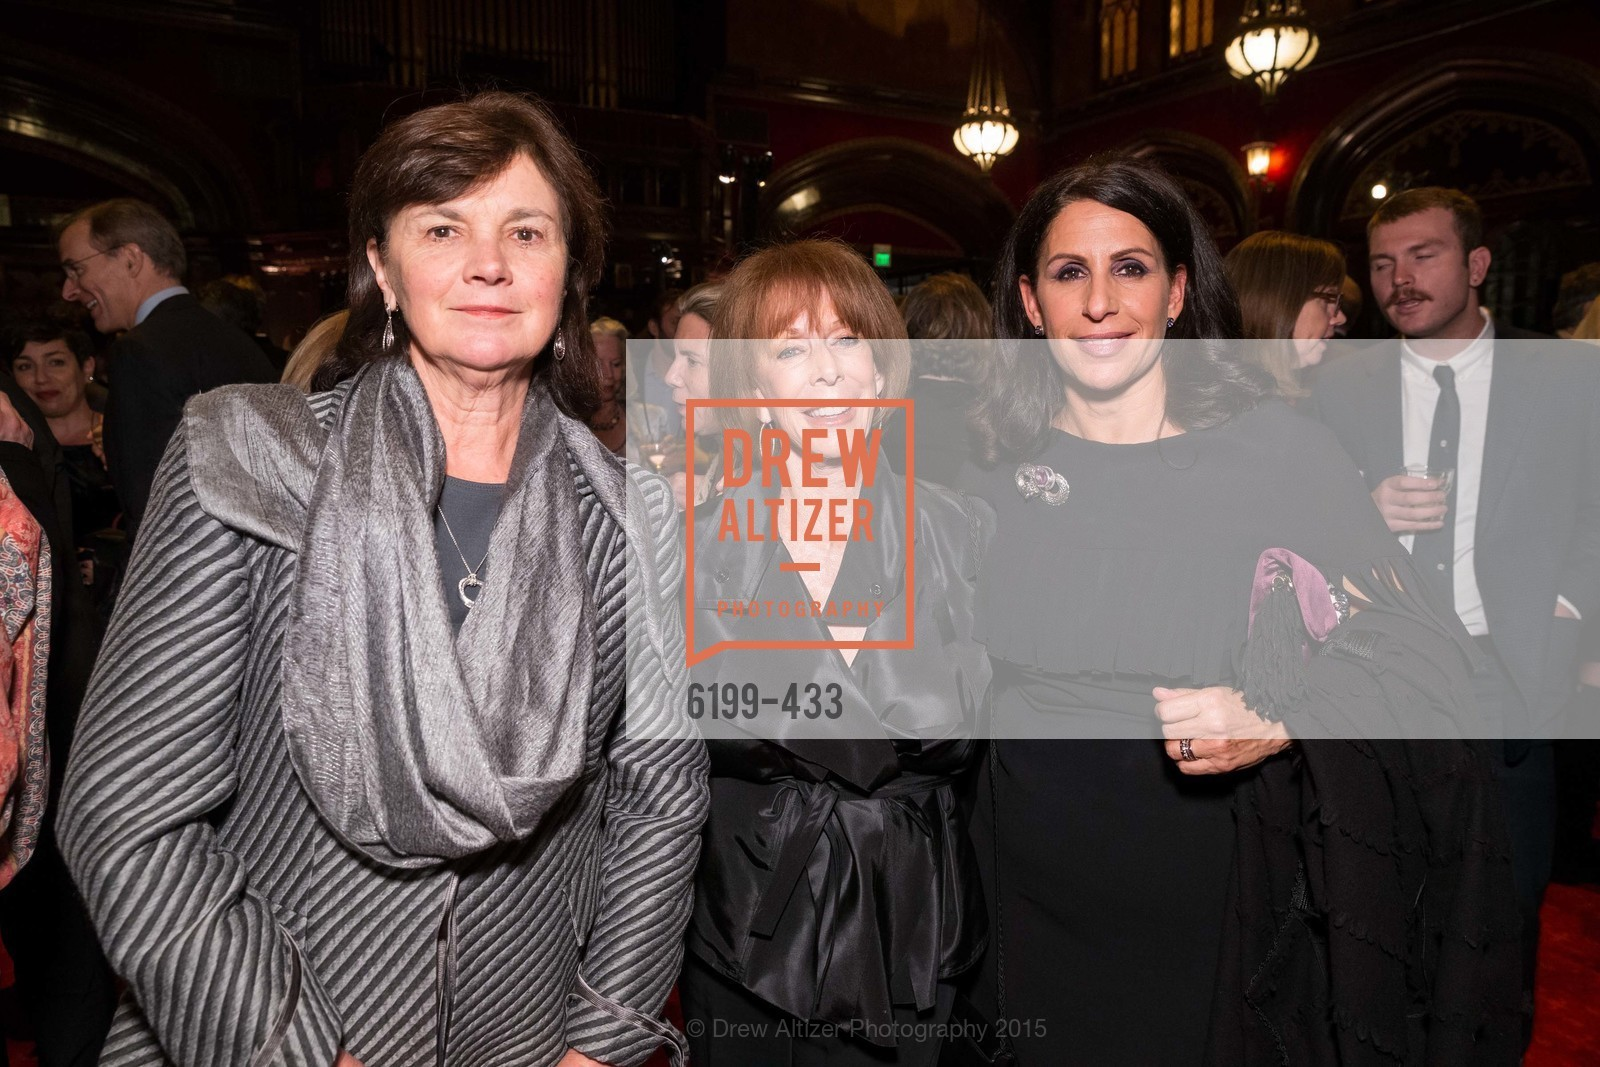 Marie Perchal, Barbara Dixon, Lisa Grotts, SFMOMA Contemporary Vision Award, Regency Ballroom. 1300 Van Ness, November 3rd, 2015,Drew Altizer, Drew Altizer Photography, full-service agency, private events, San Francisco photographer, photographer california